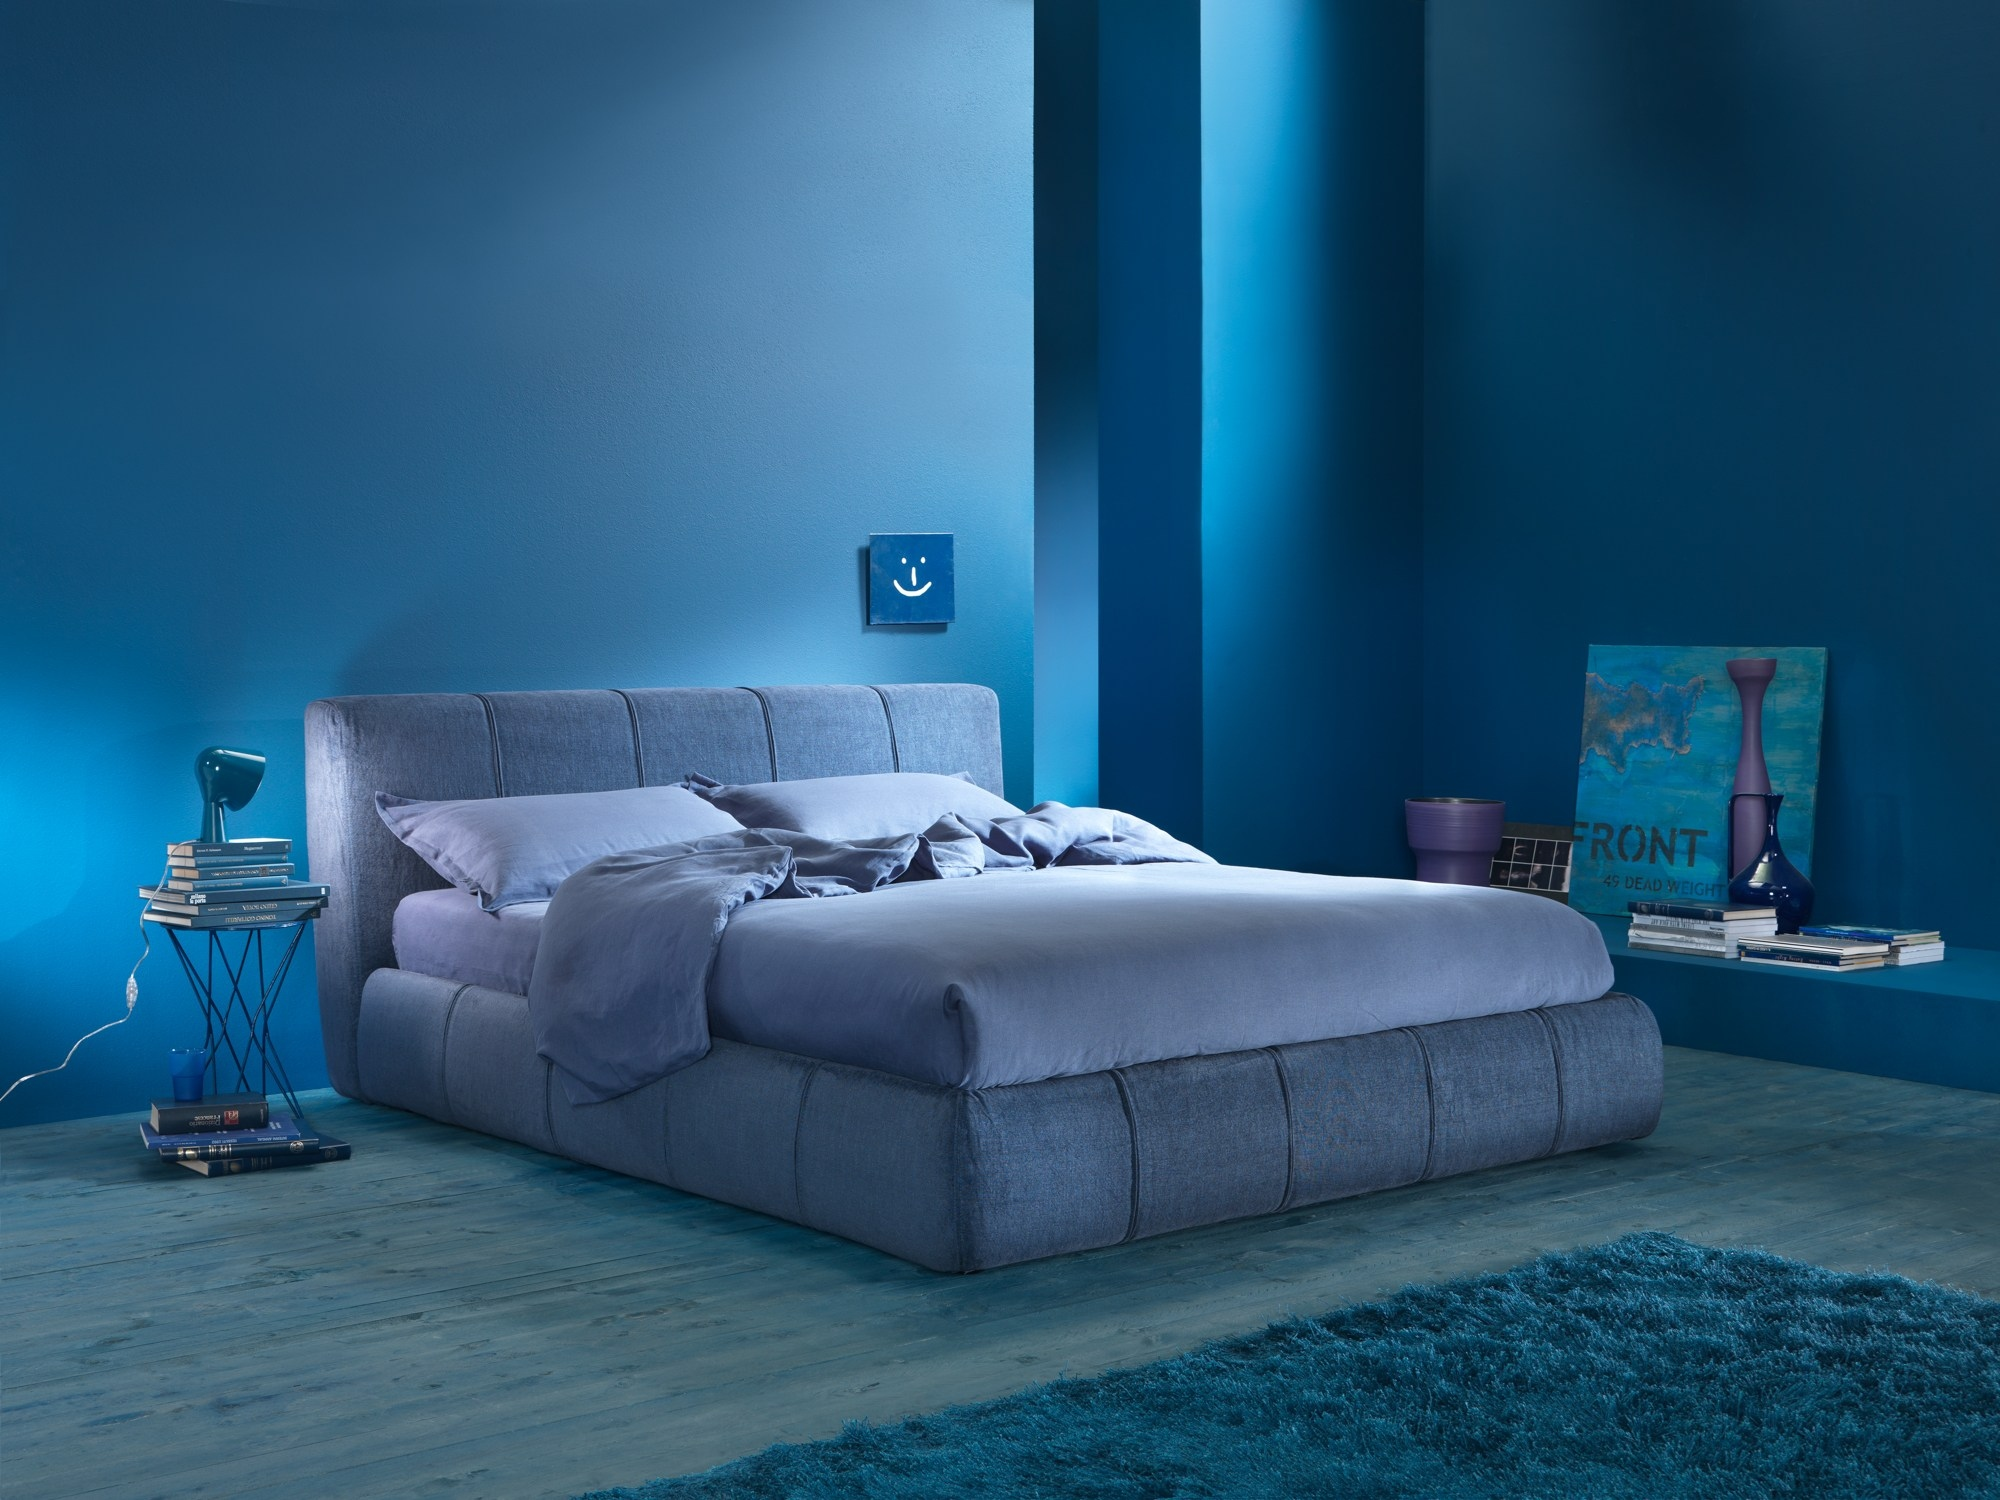 Interior Blue Bedroom moody interior breathtaking bedrooms in shades of blue cool and modern the bedroom